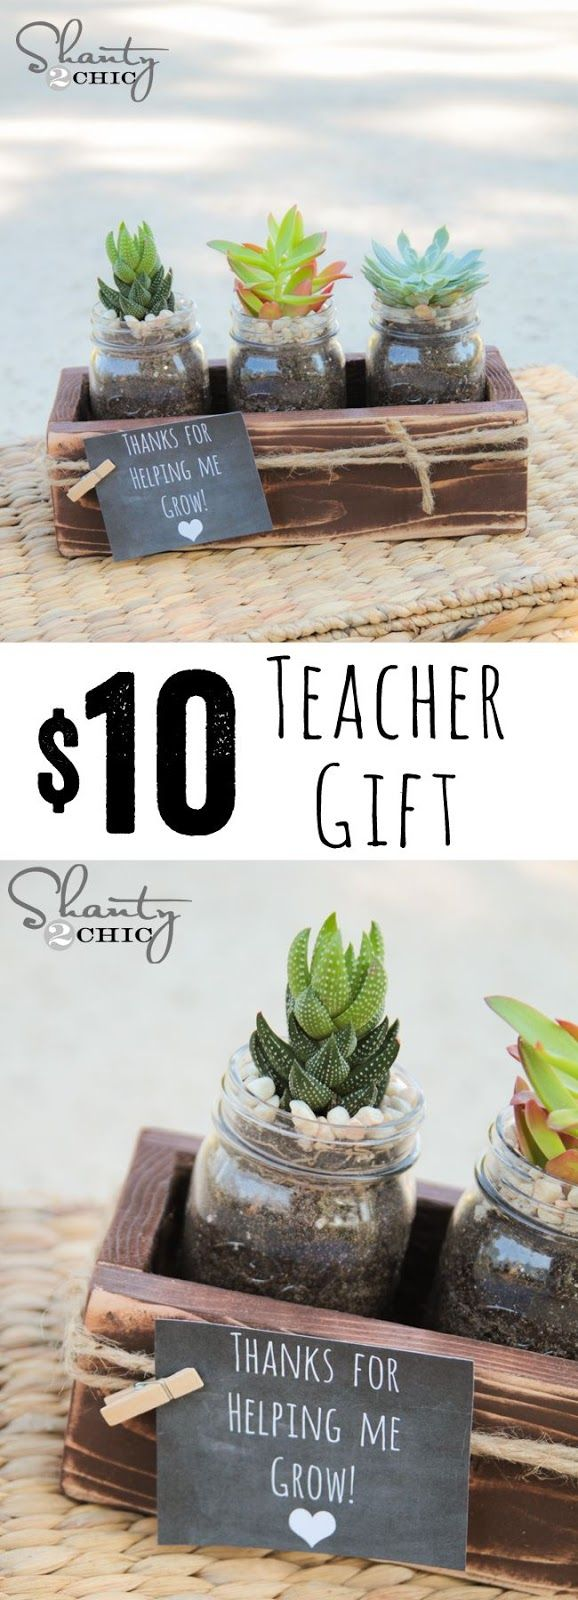 Teacher Gift - $10 succulent with FREE plans and printable via Shanty 2 Chic